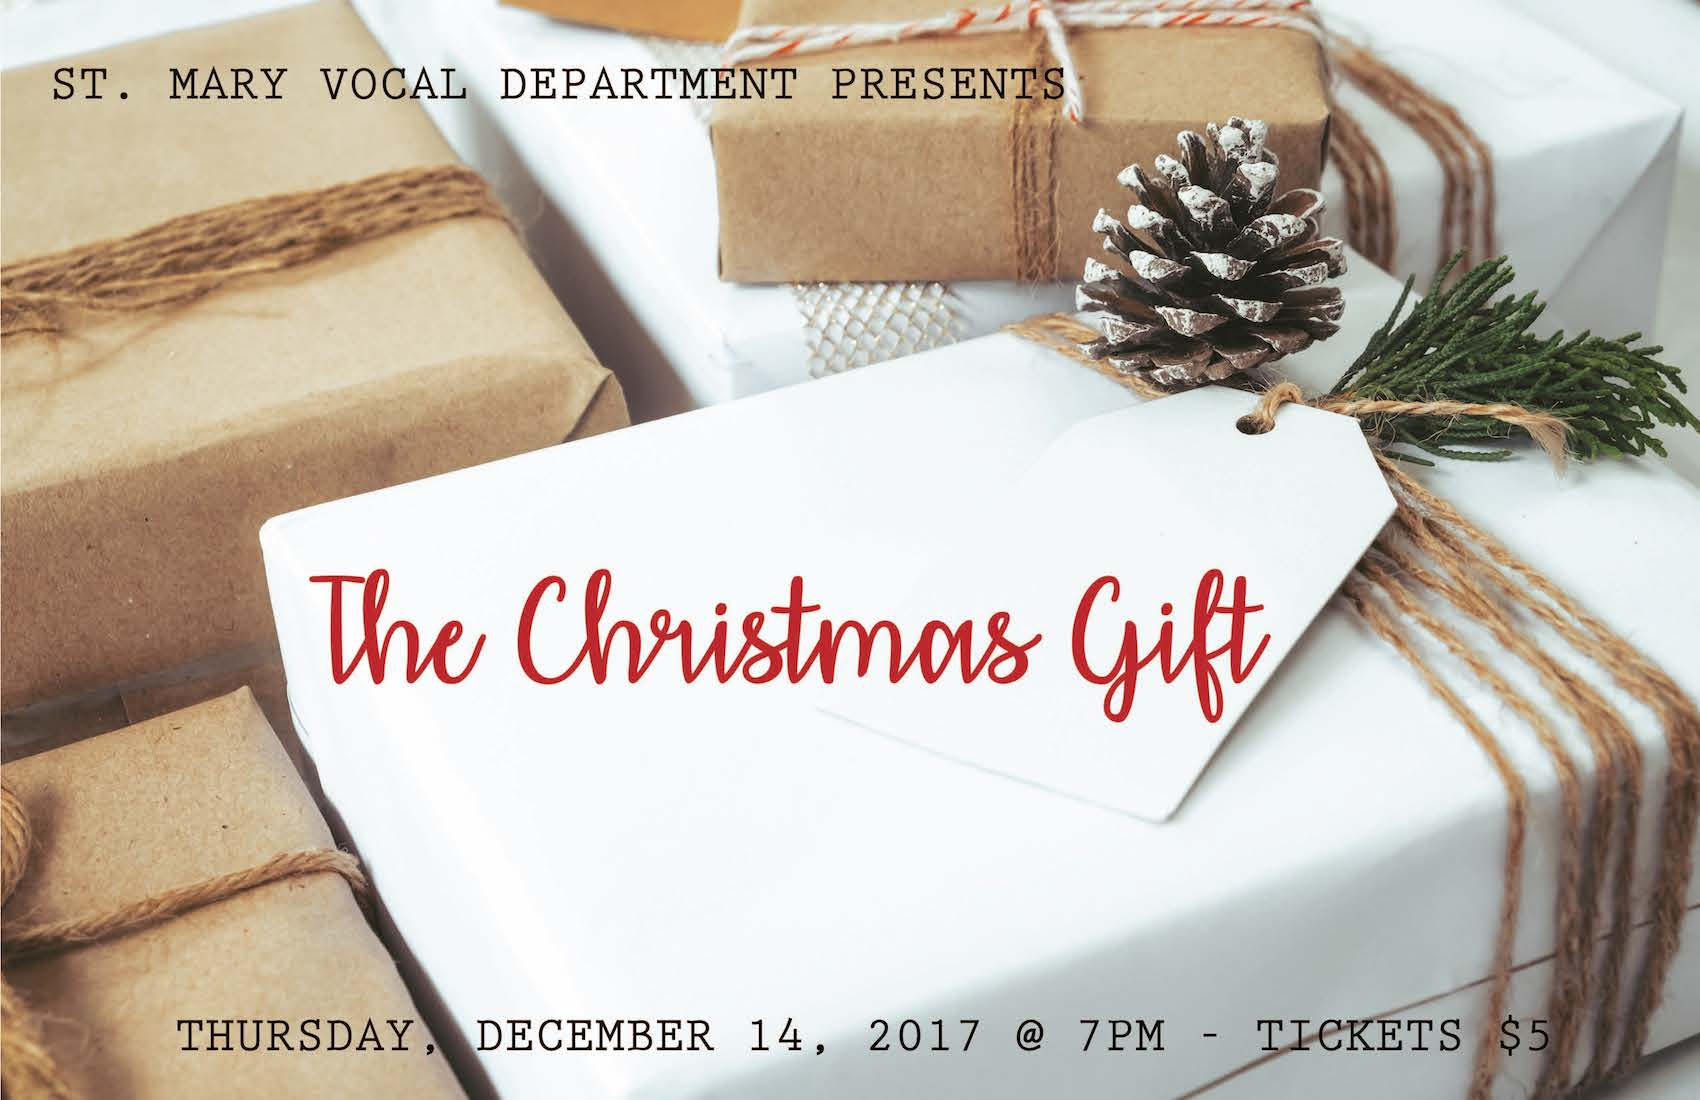 Christmas 2017 Vocal Music Concert